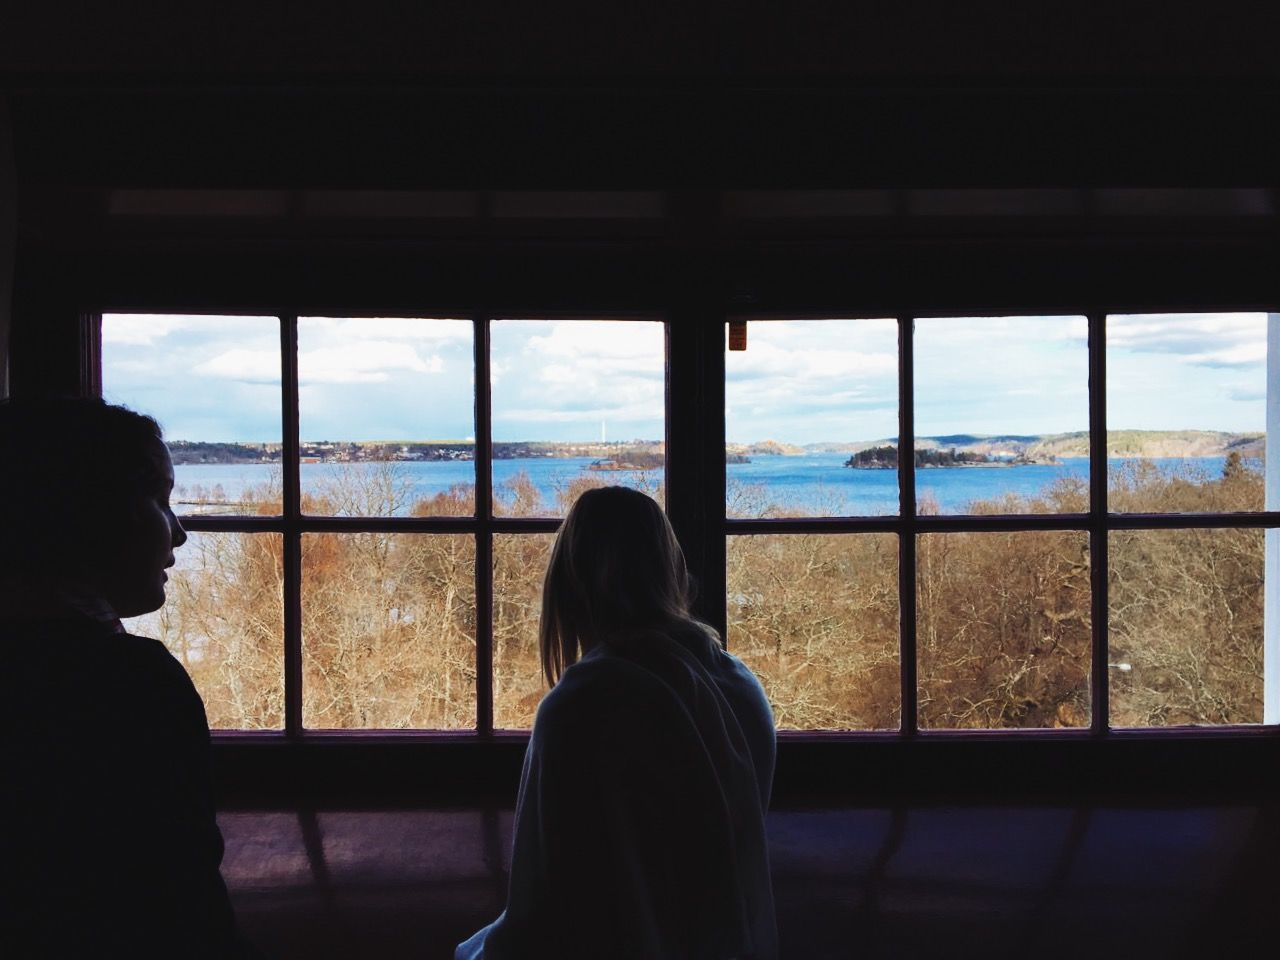 window, indoors, real people, rear view, looking through window, two people, lifestyles, leisure activity, day, women, nature, sky, standing, men, architecture